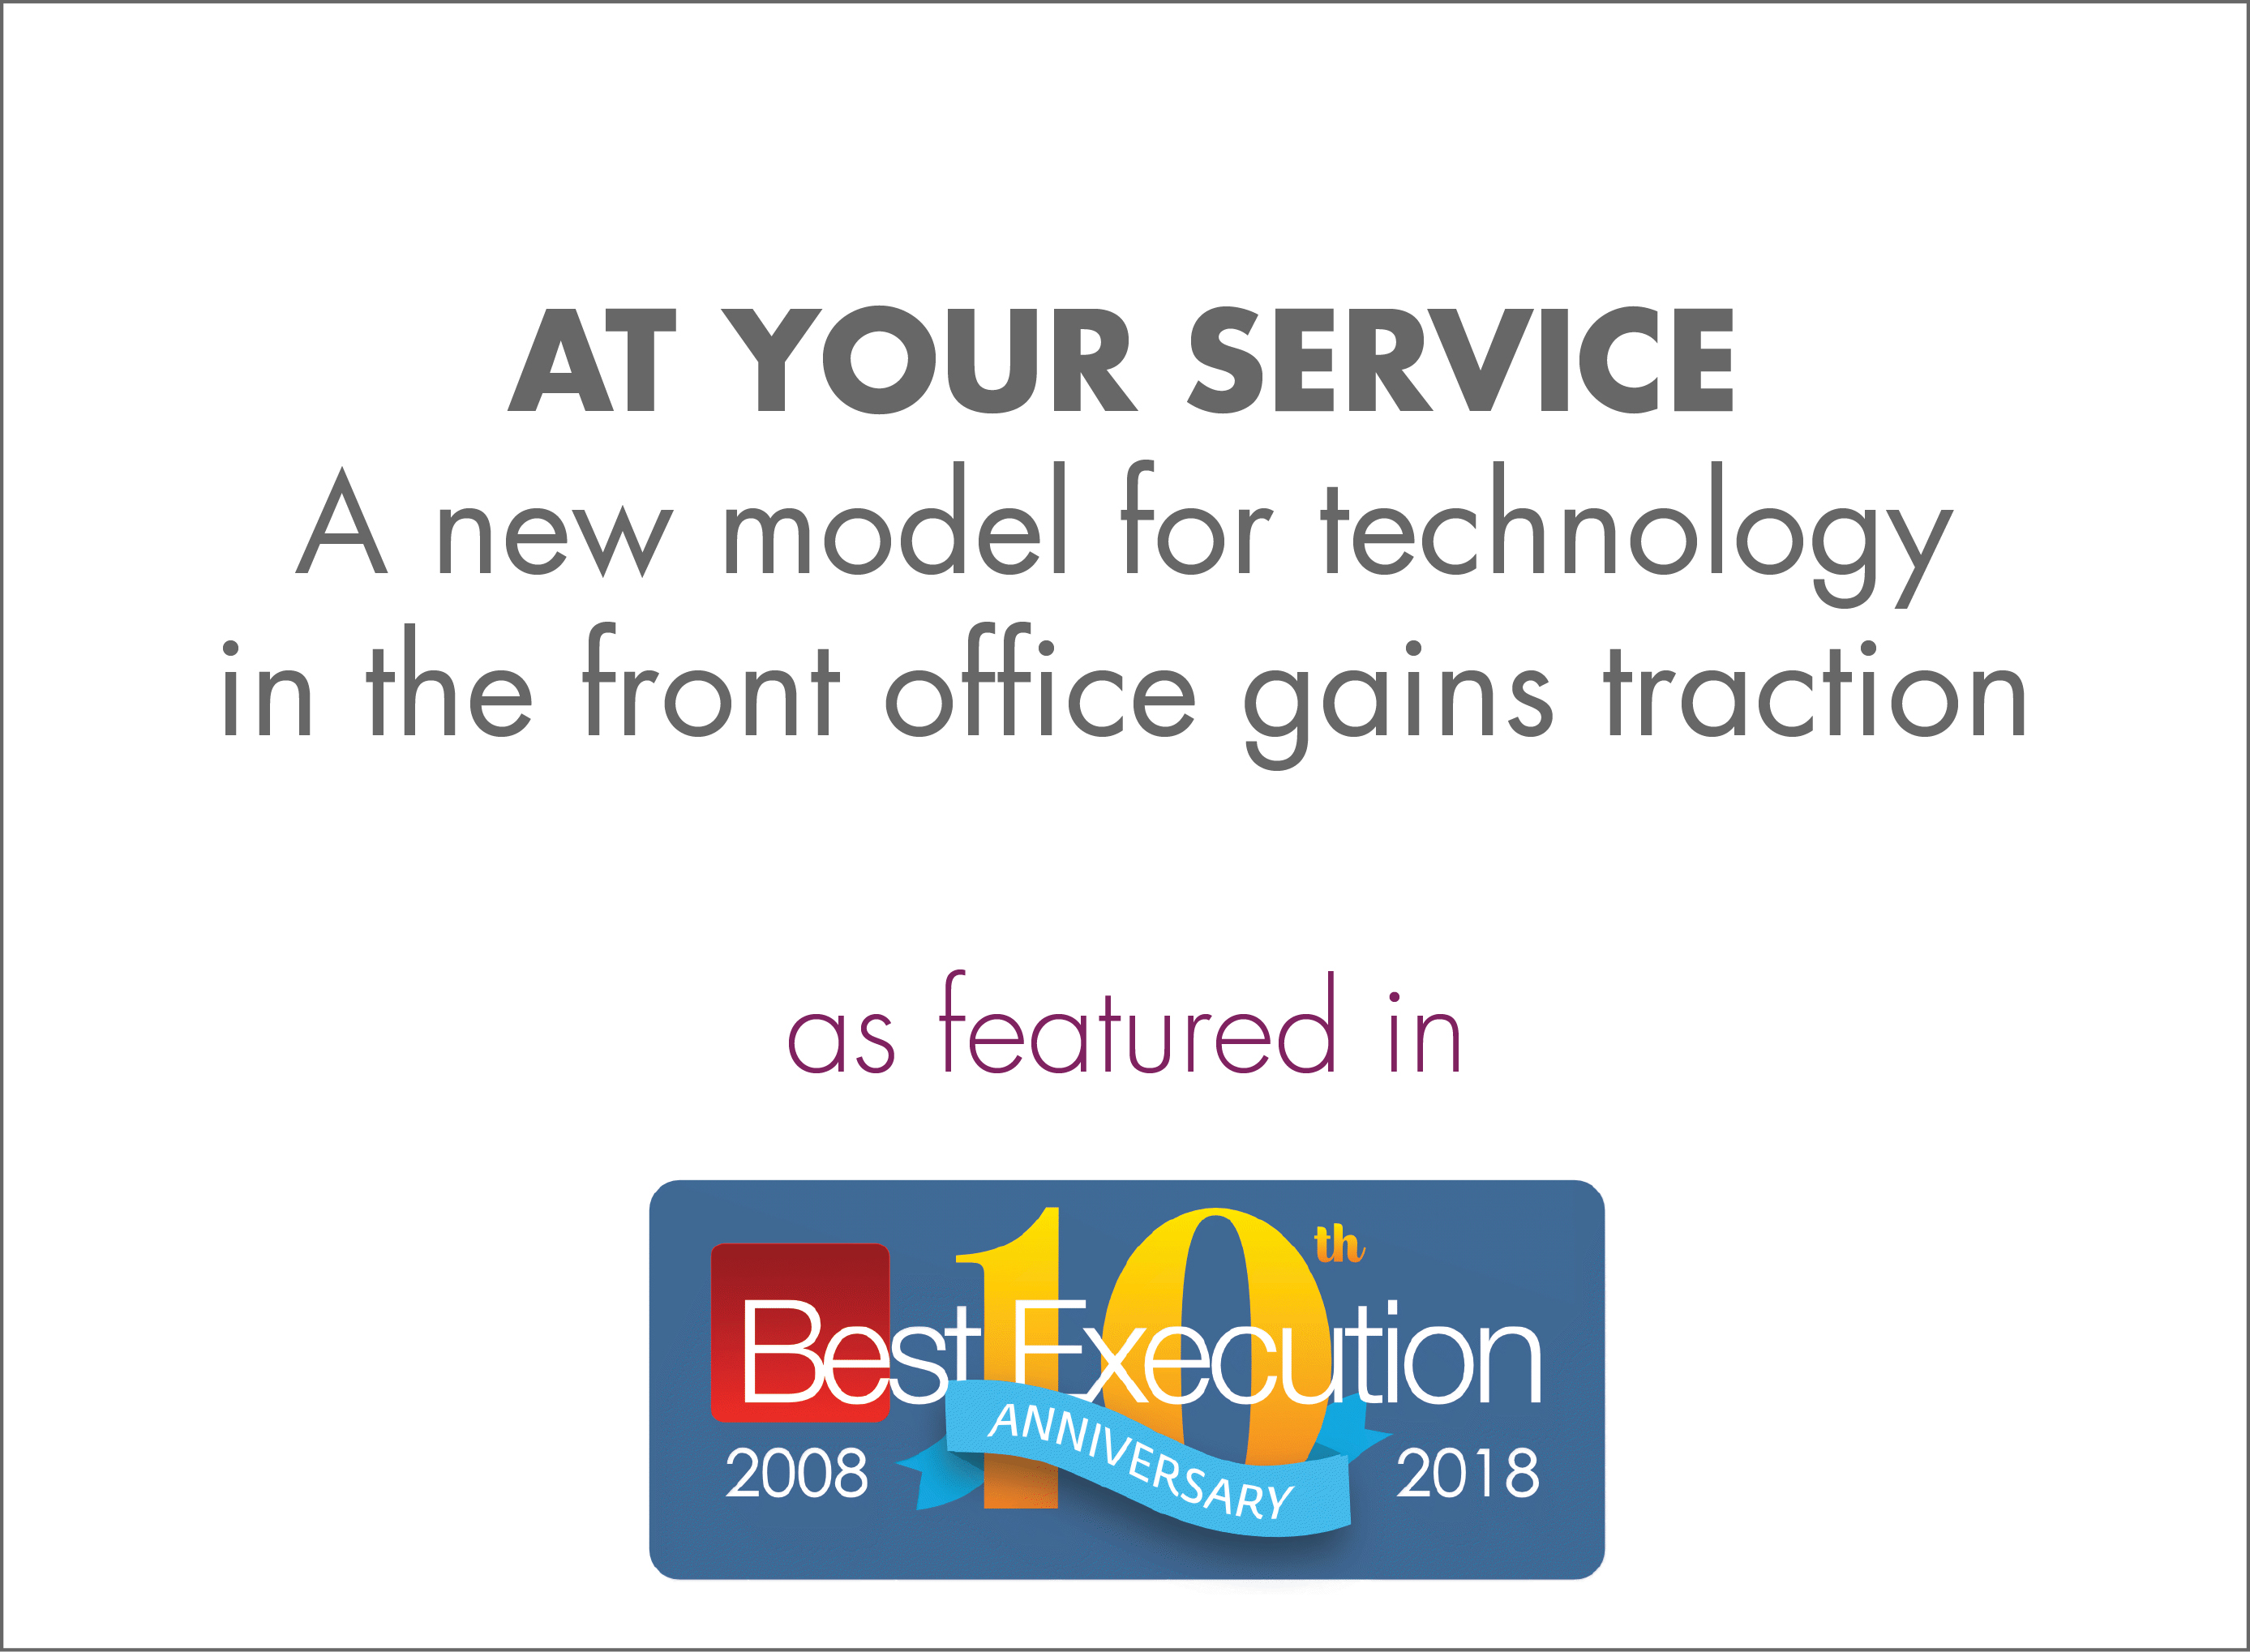 At your service: A new model for technology in the front office gains traction